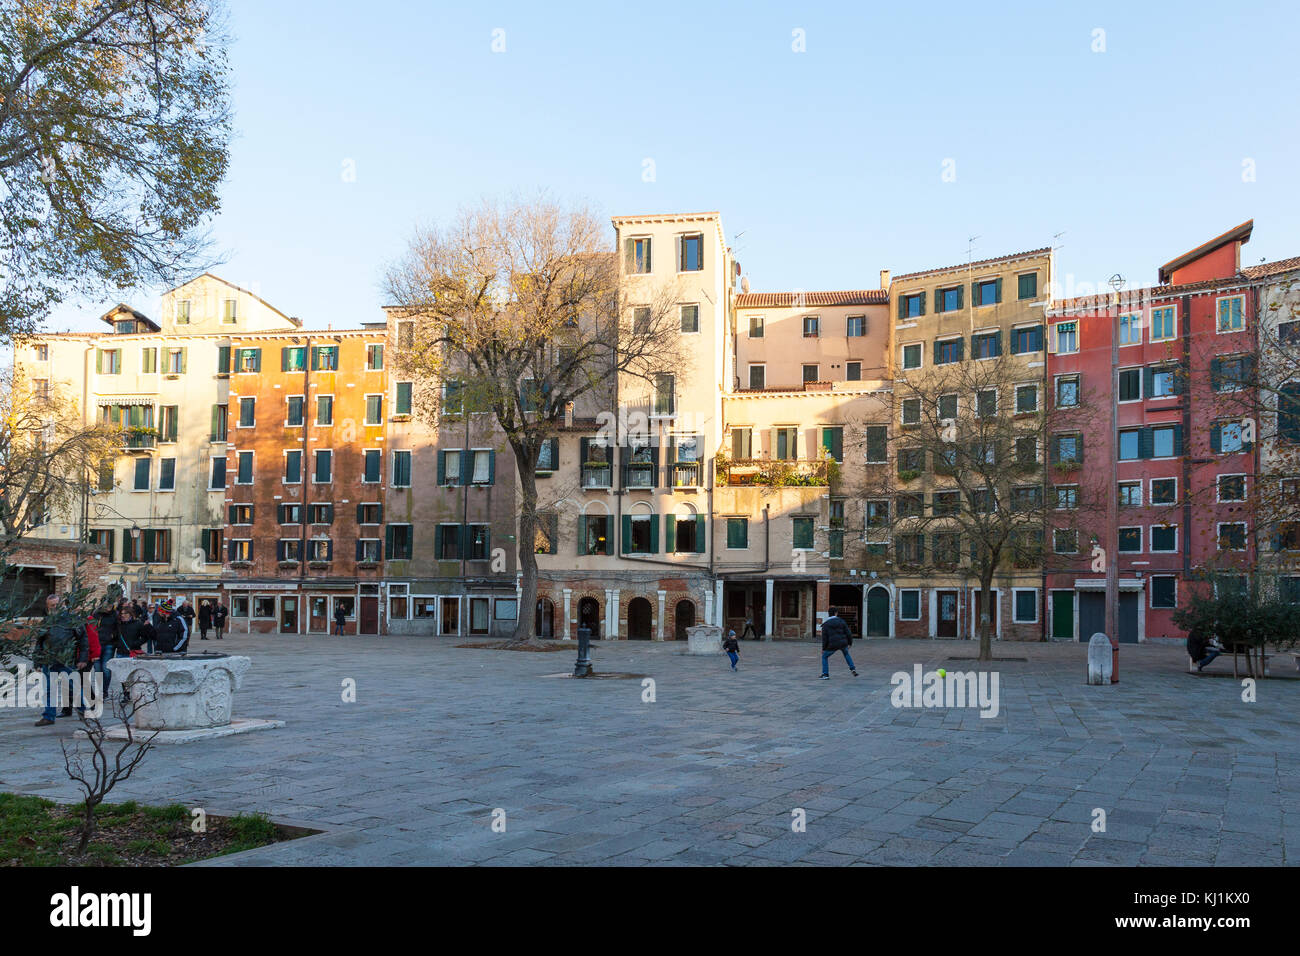 The Jewish ghetto, Campo de Ghetto Novo, at dusk, Venice, Veneto, Italy withits typical tall buildings due to lack - Stock Image